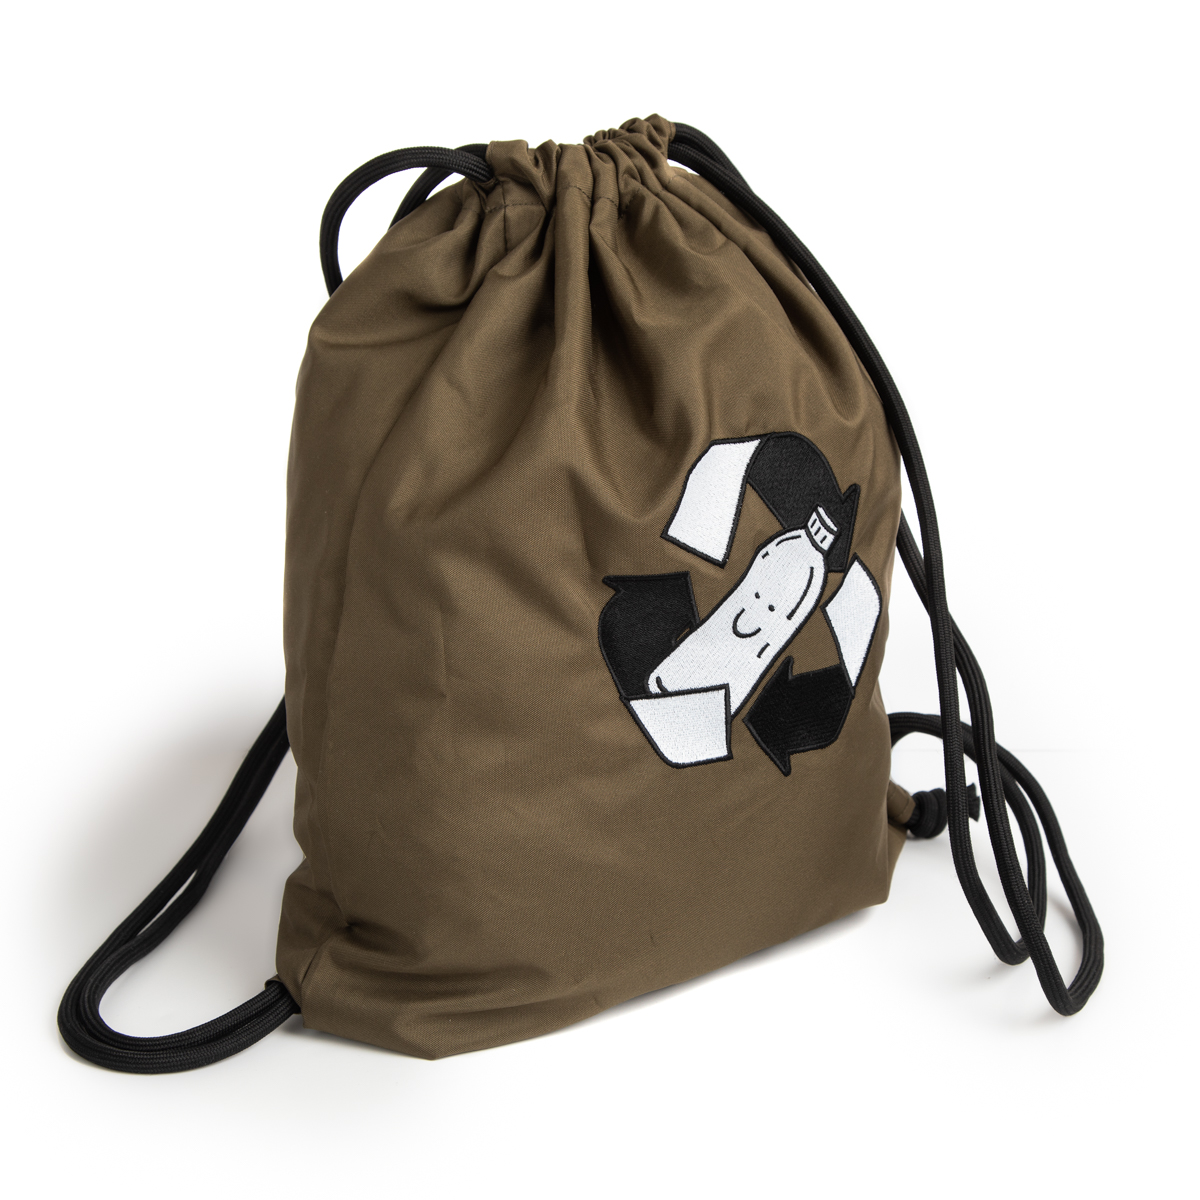 Embroidered Recycled Drawstring Bags